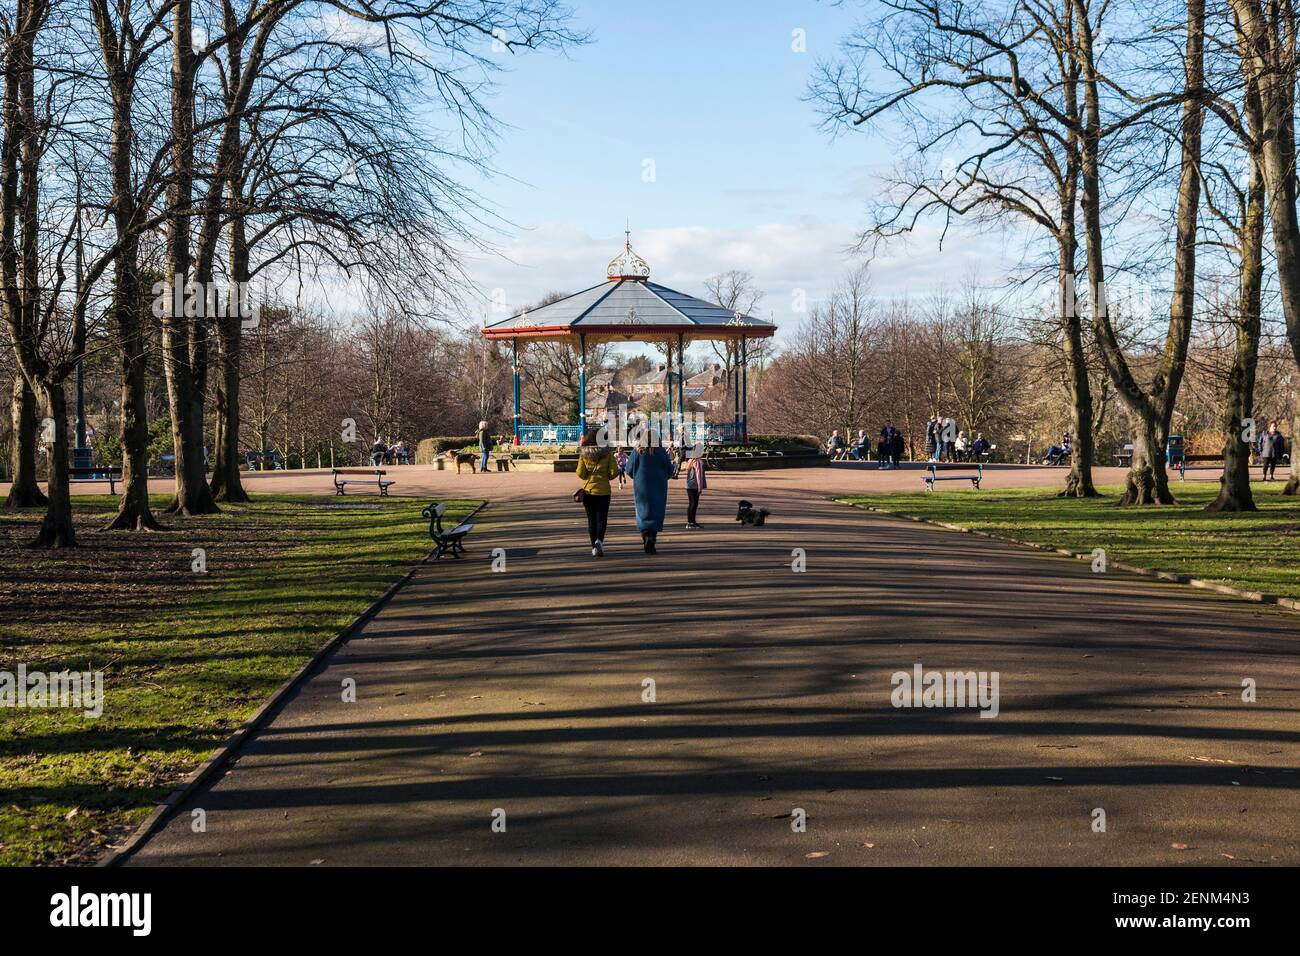 The bandstand in Ropner Park, Stockton on Tees, England, UK Stock Photo